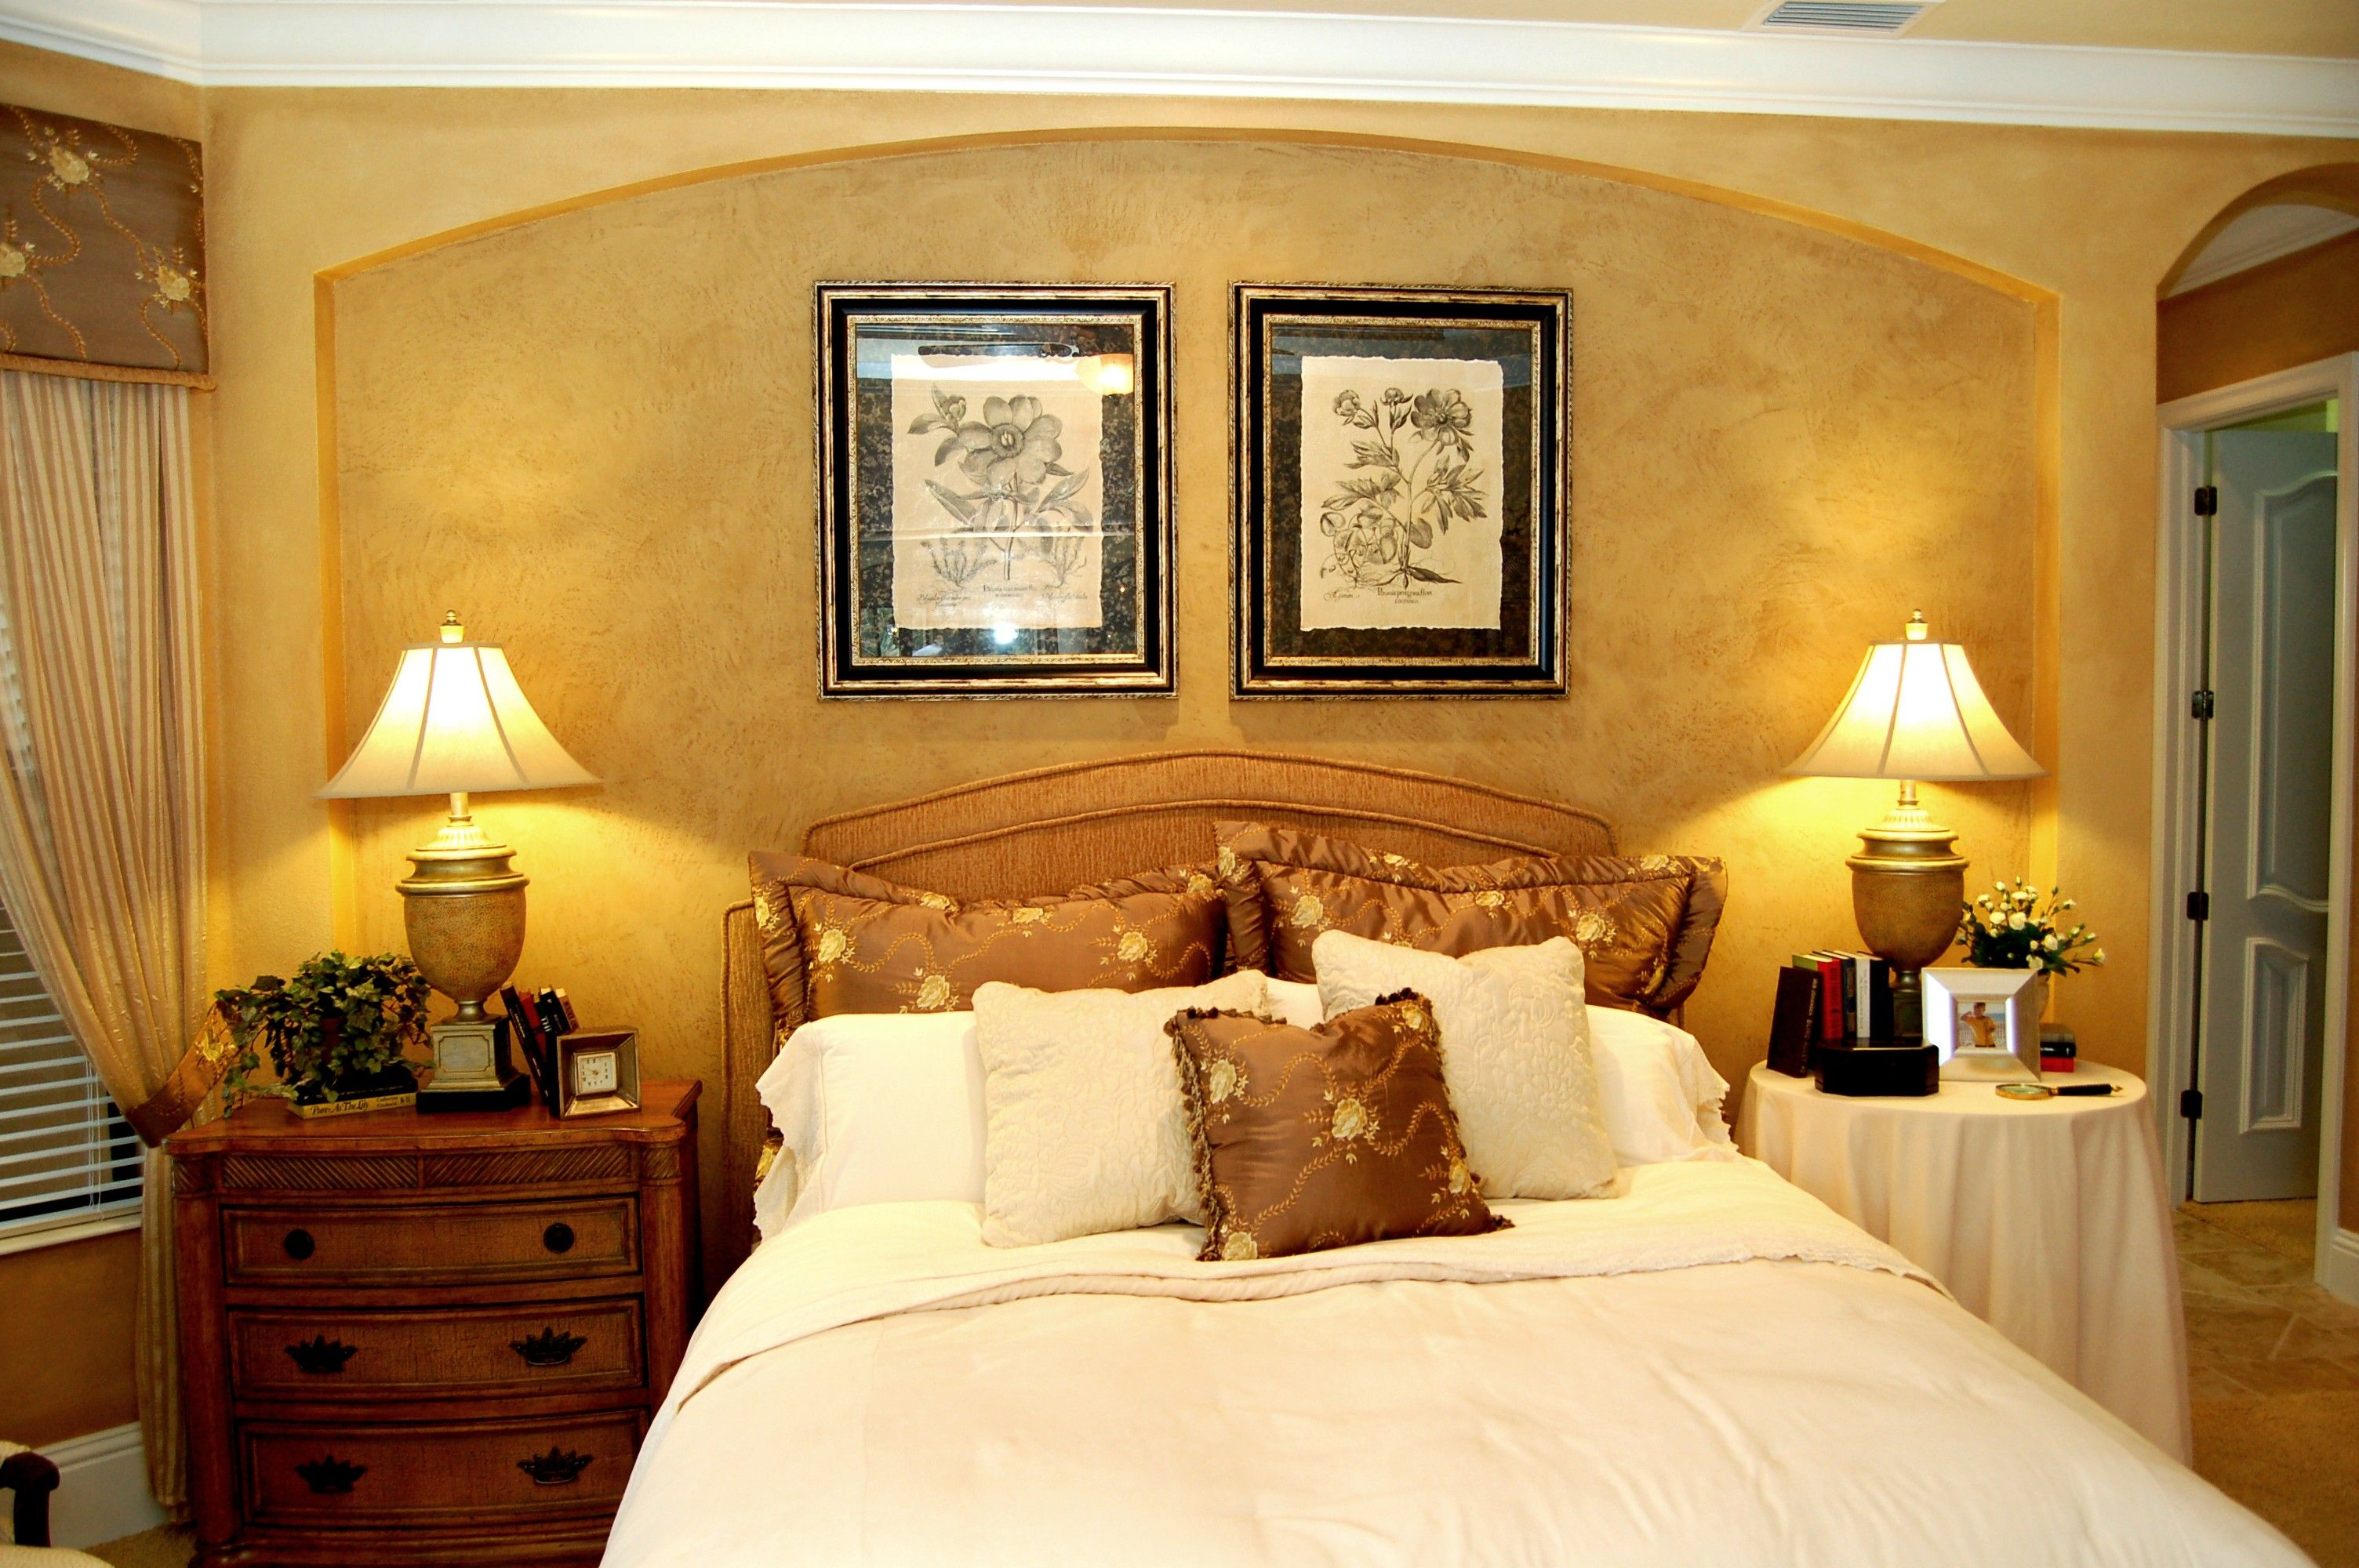 Speir Faux Finishes - Venetian plaster headboard wall and bedroom ...